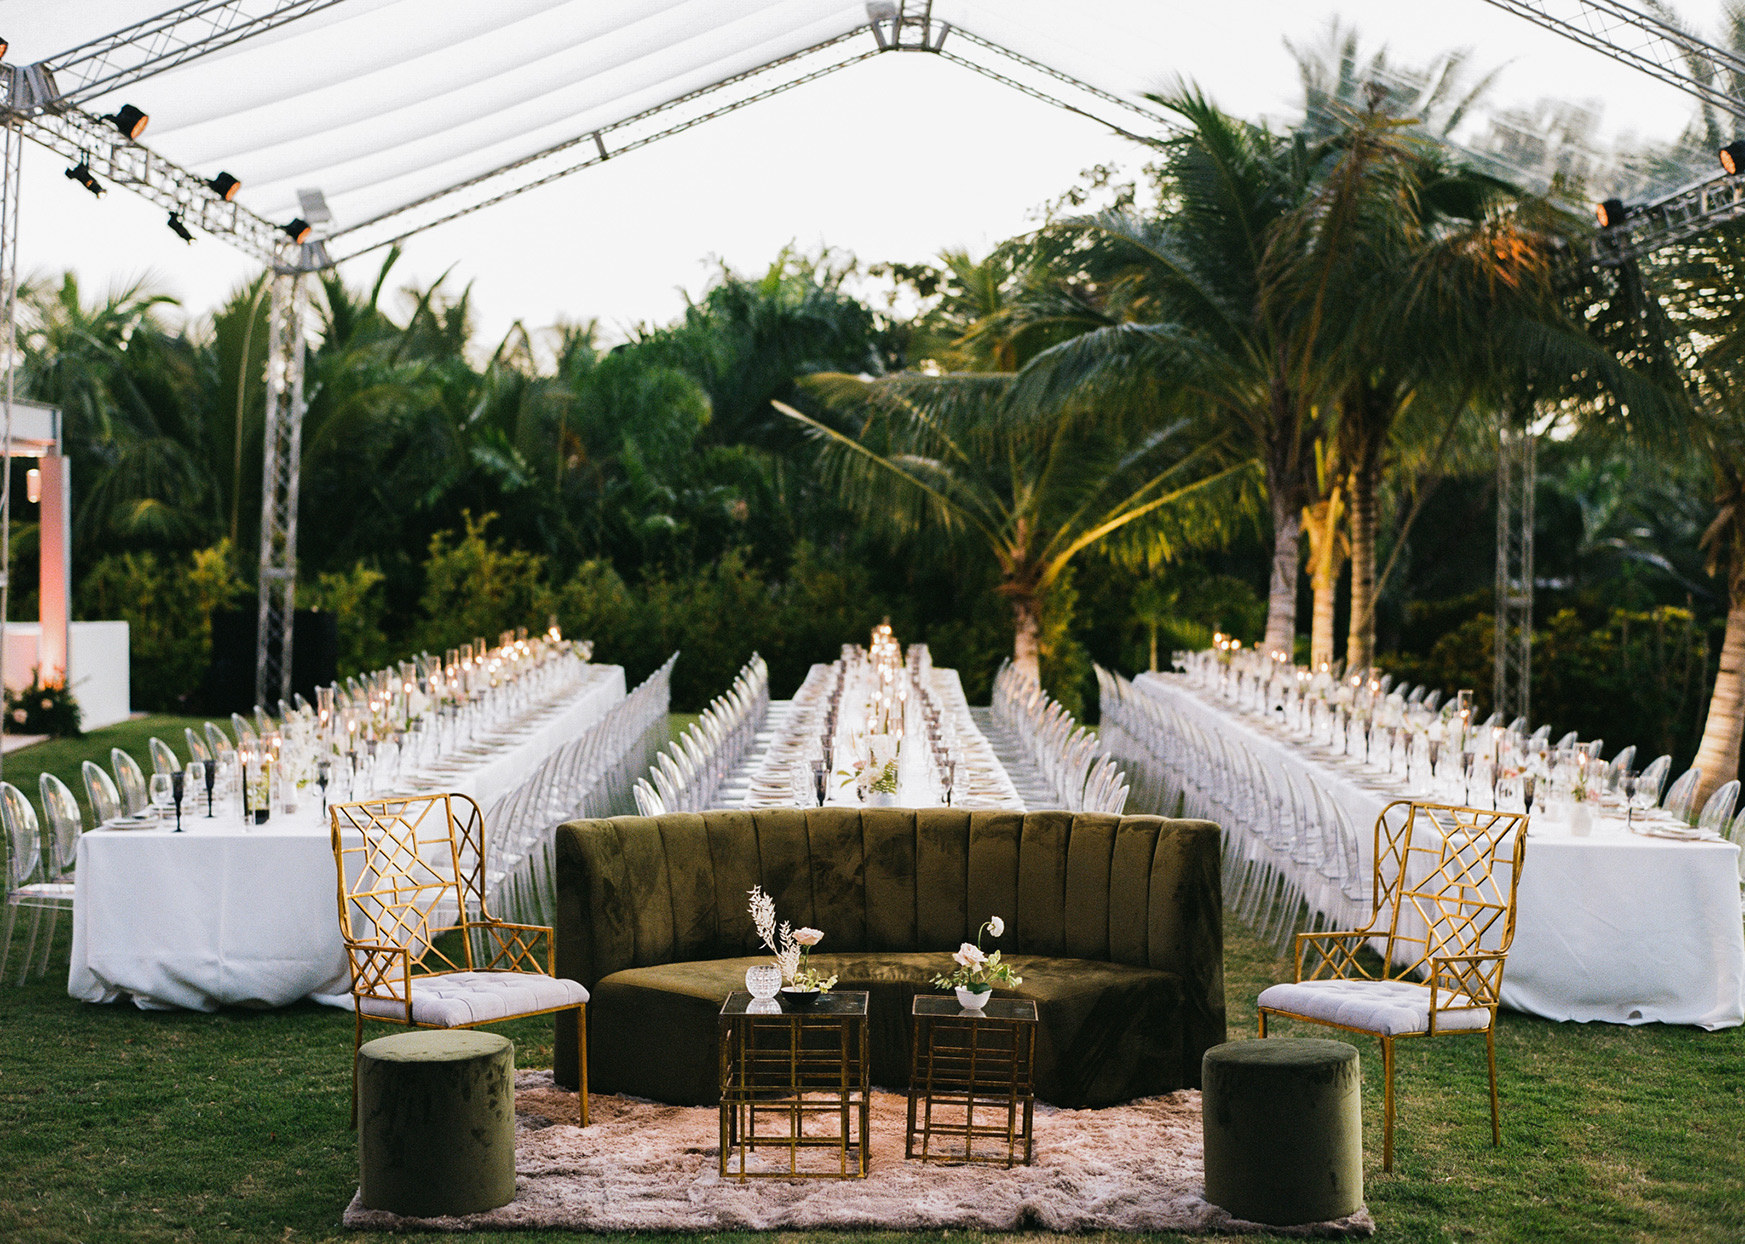 Wedding reception with three long tables with white linens and translucent chairs